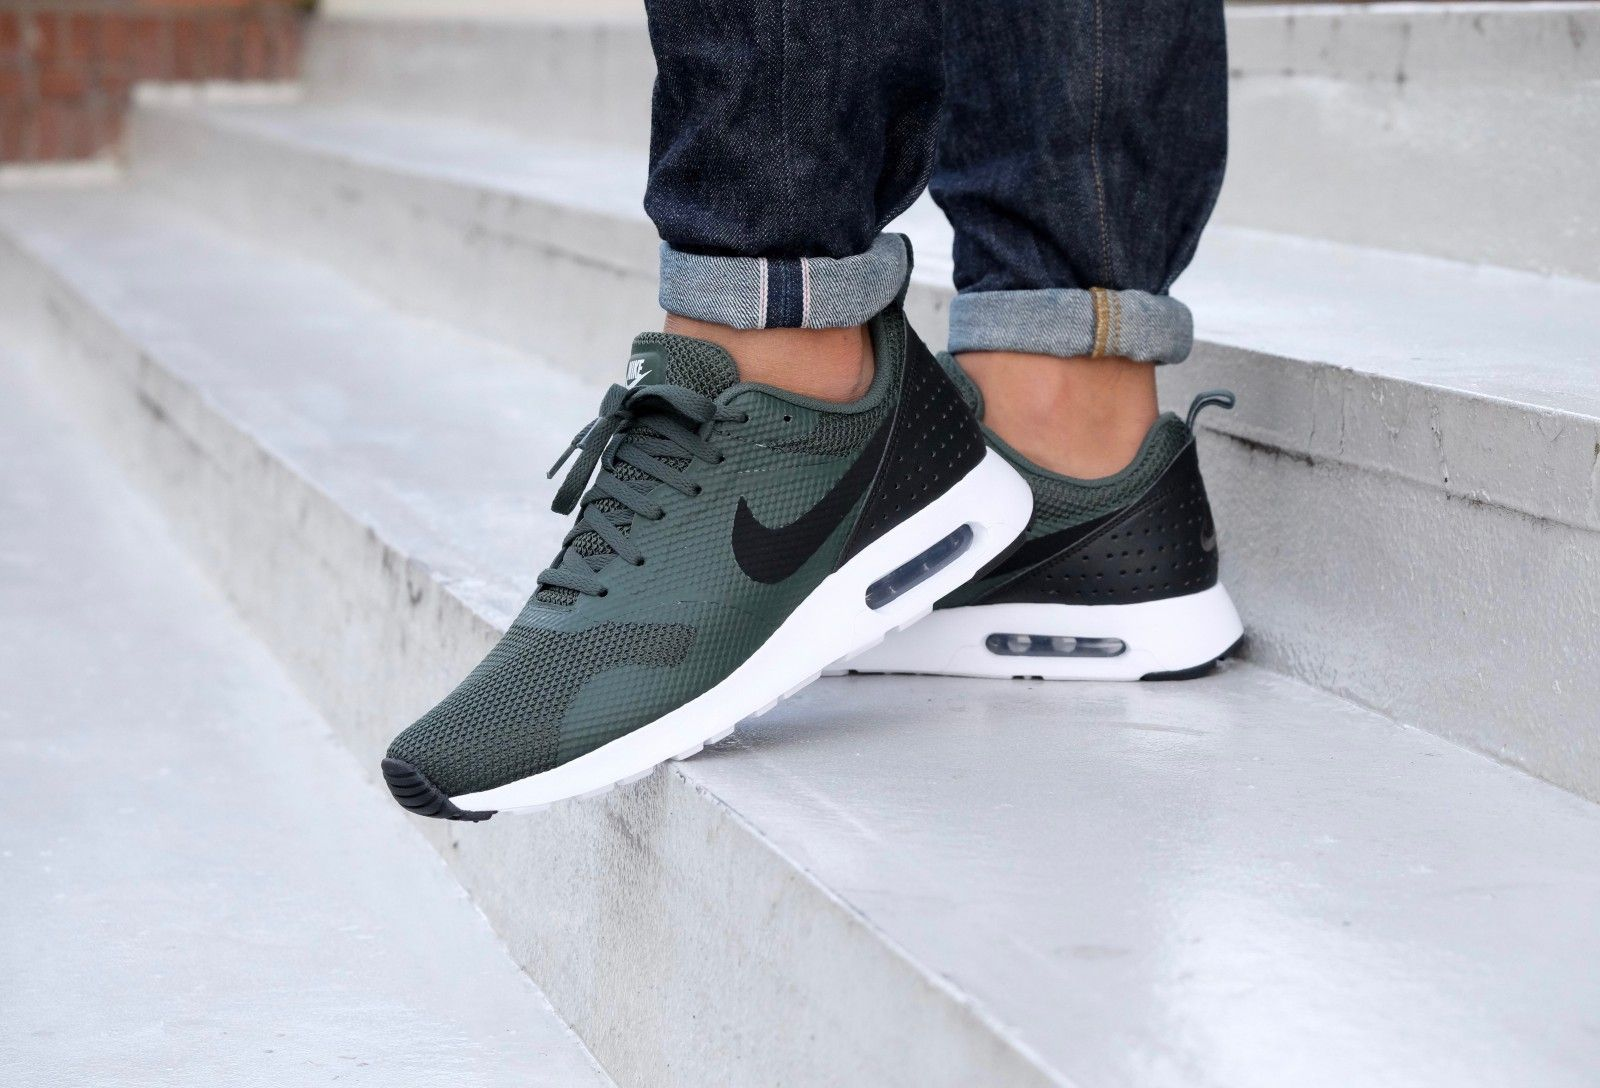 Nike Air Max Tavas Grove Green Black White 705149 305 in